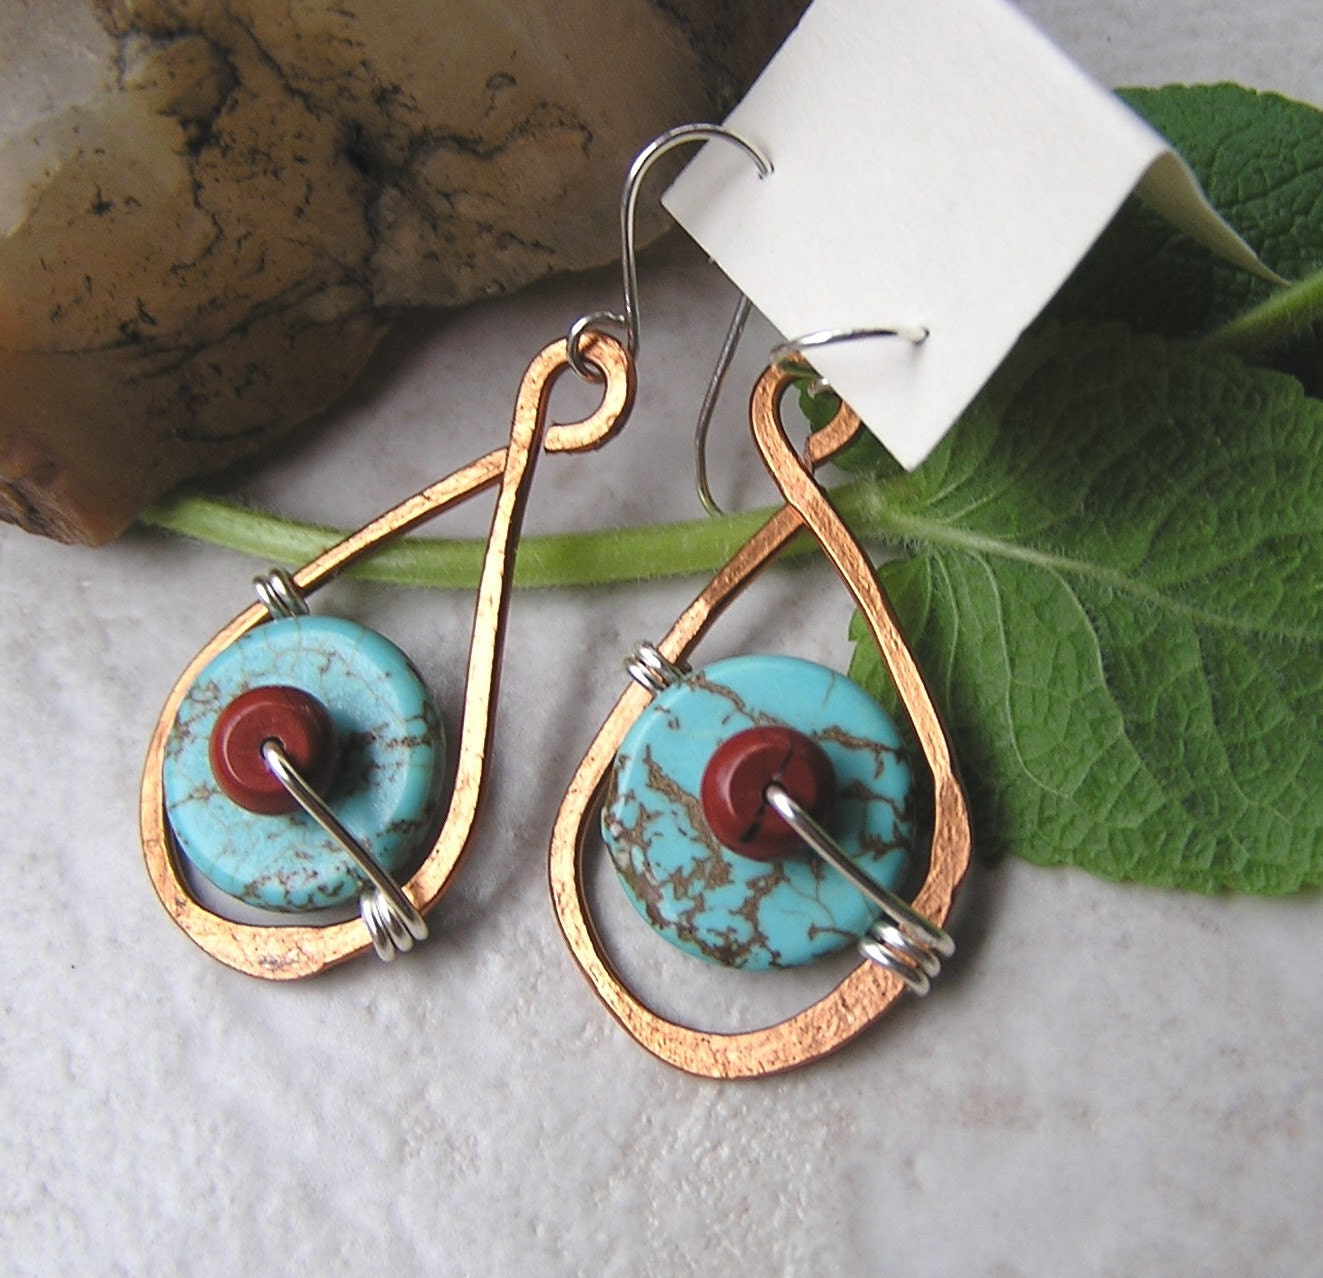 Desert Country hammered copper earrings with turquoise and red jasper